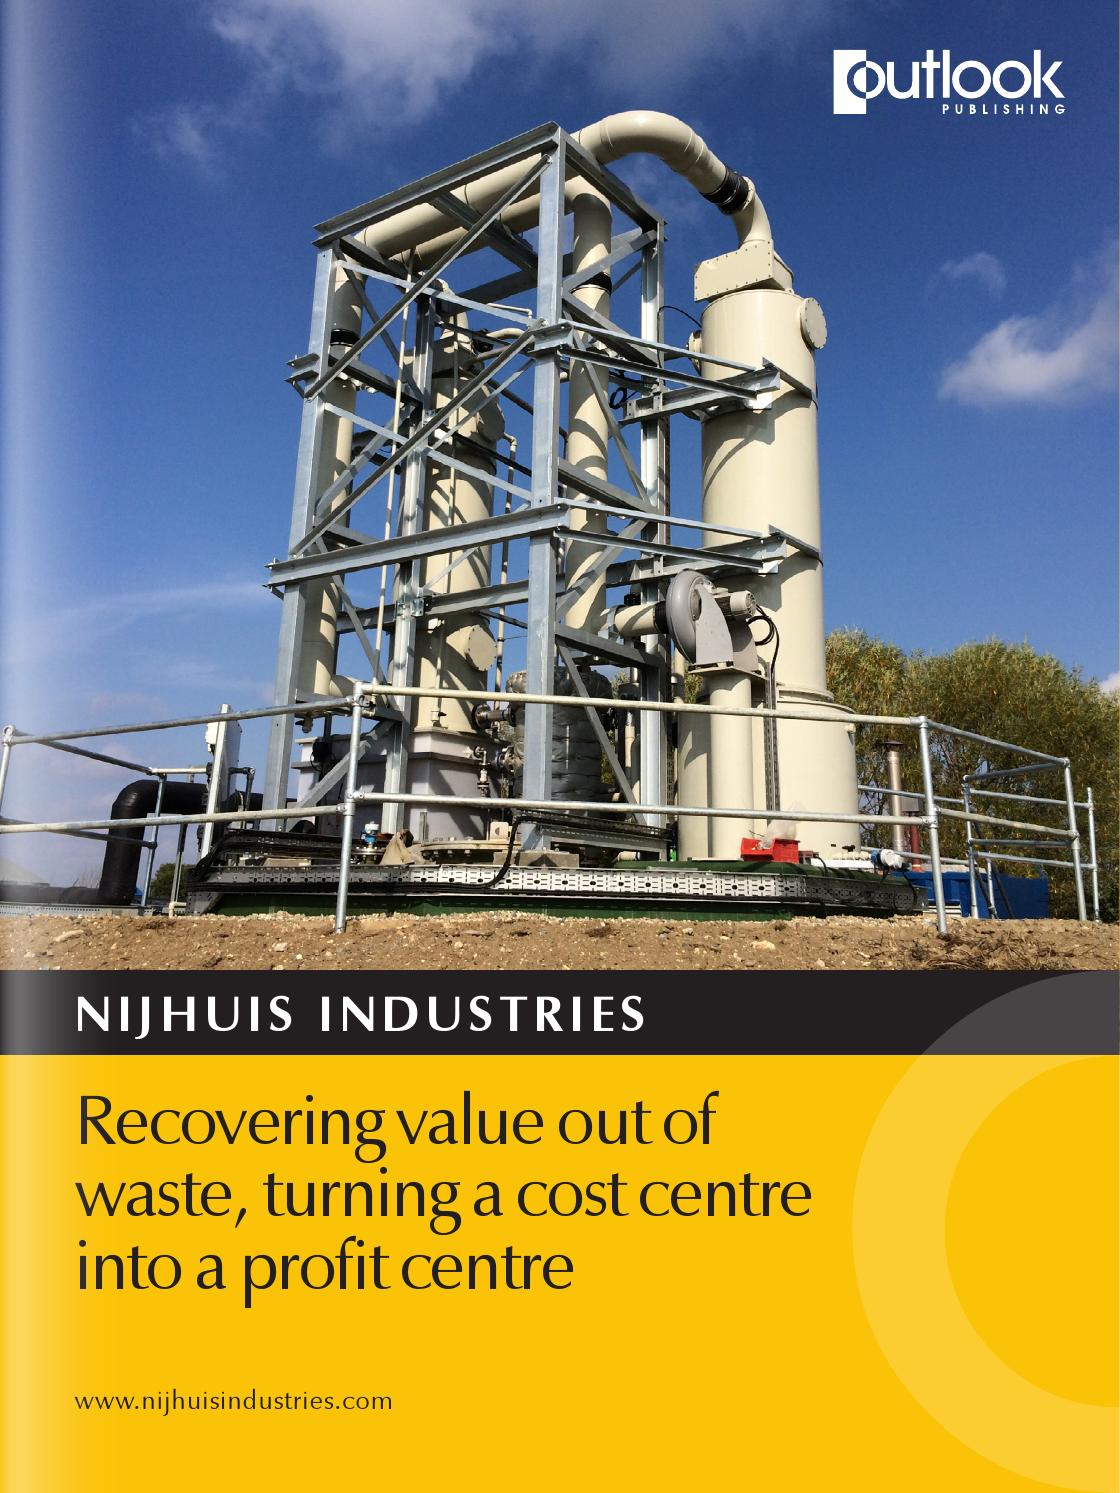 Gebrauchte Zelthallen H U T Industrial Solution Nijhuis Industries By Outlook Publishing Issuu